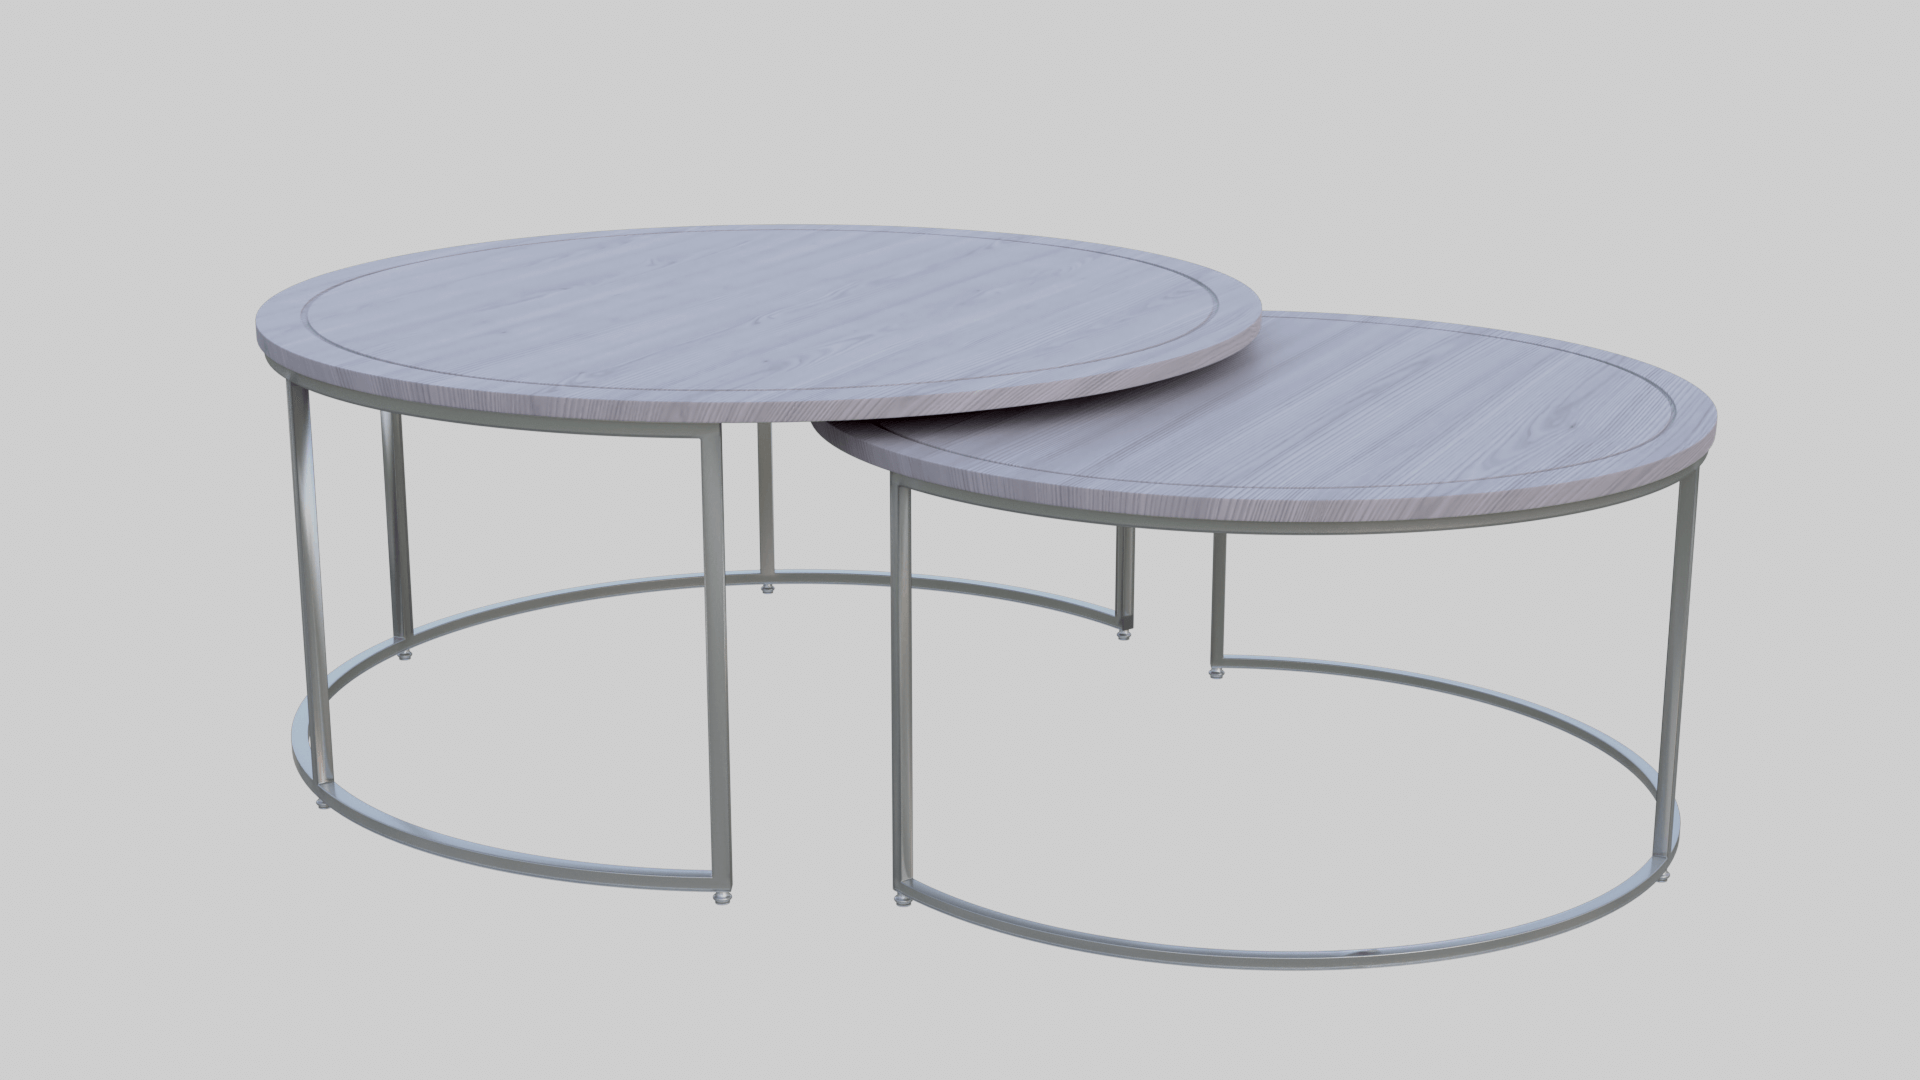 High-Quality 3D Model of a Coffee Table